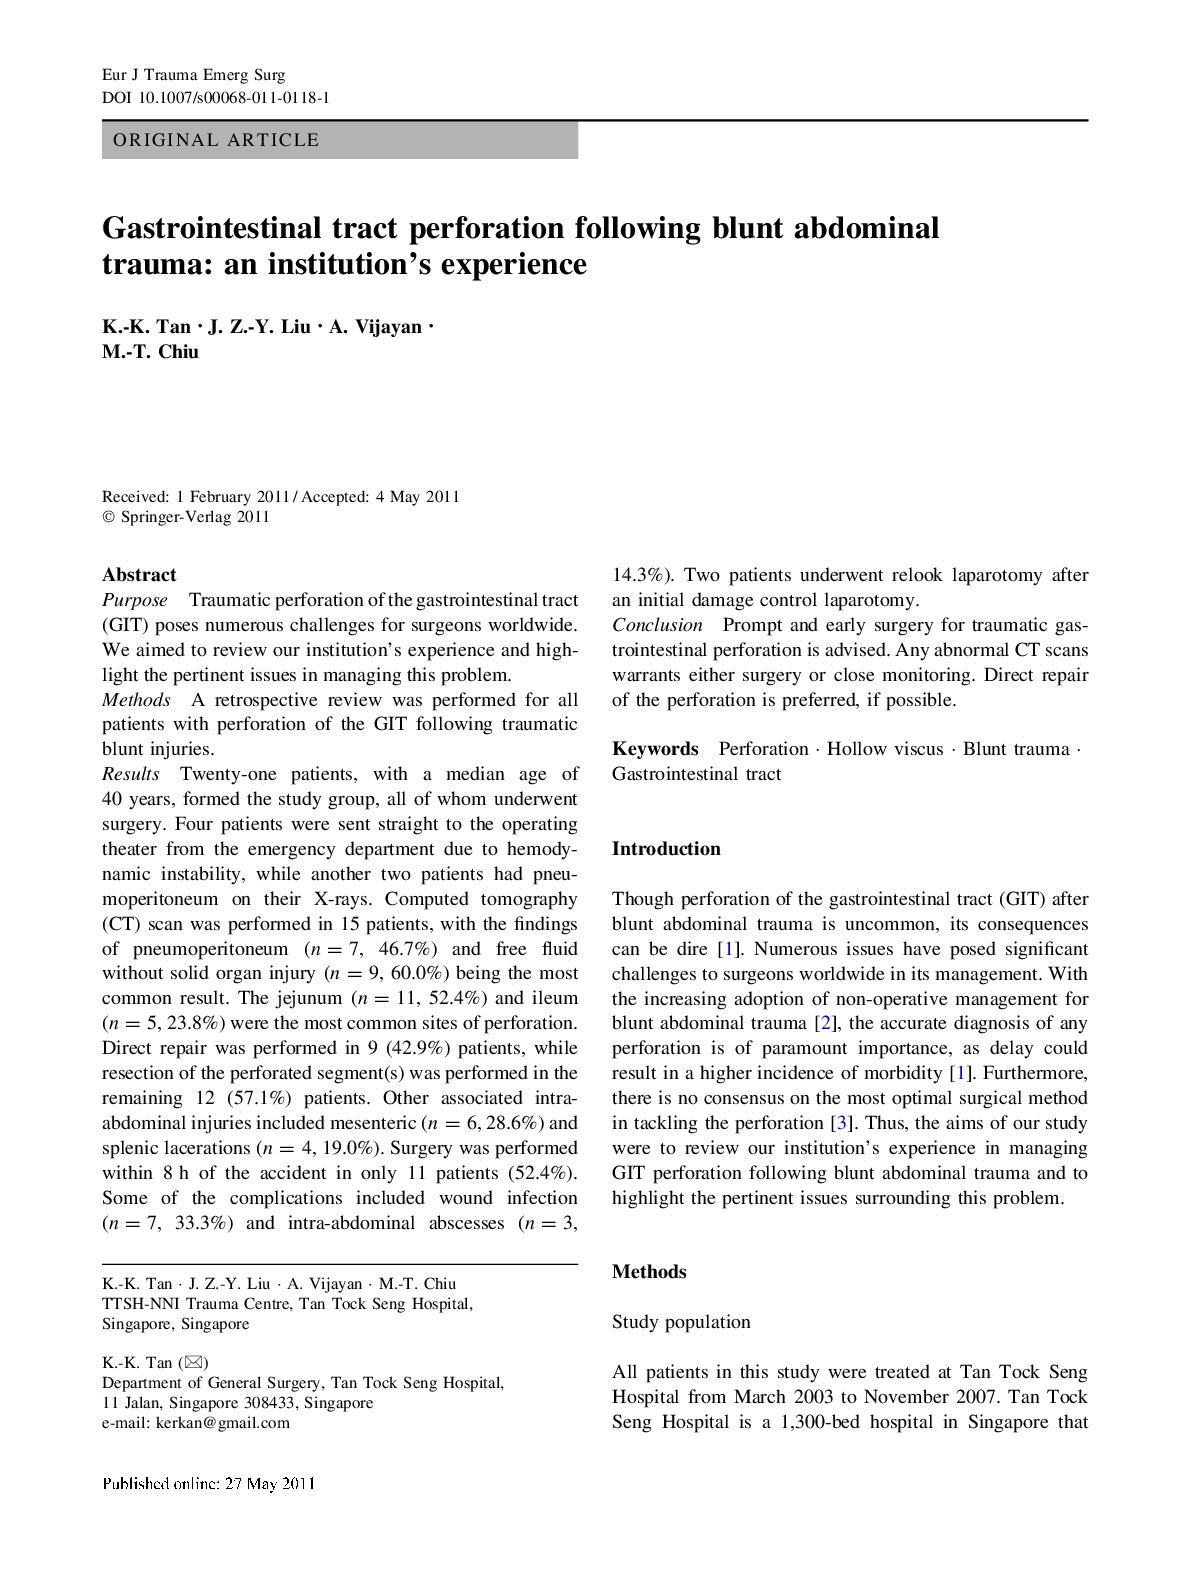 Gastrointestinal tract perforation following blunt abdominal trauma: an institution's experience